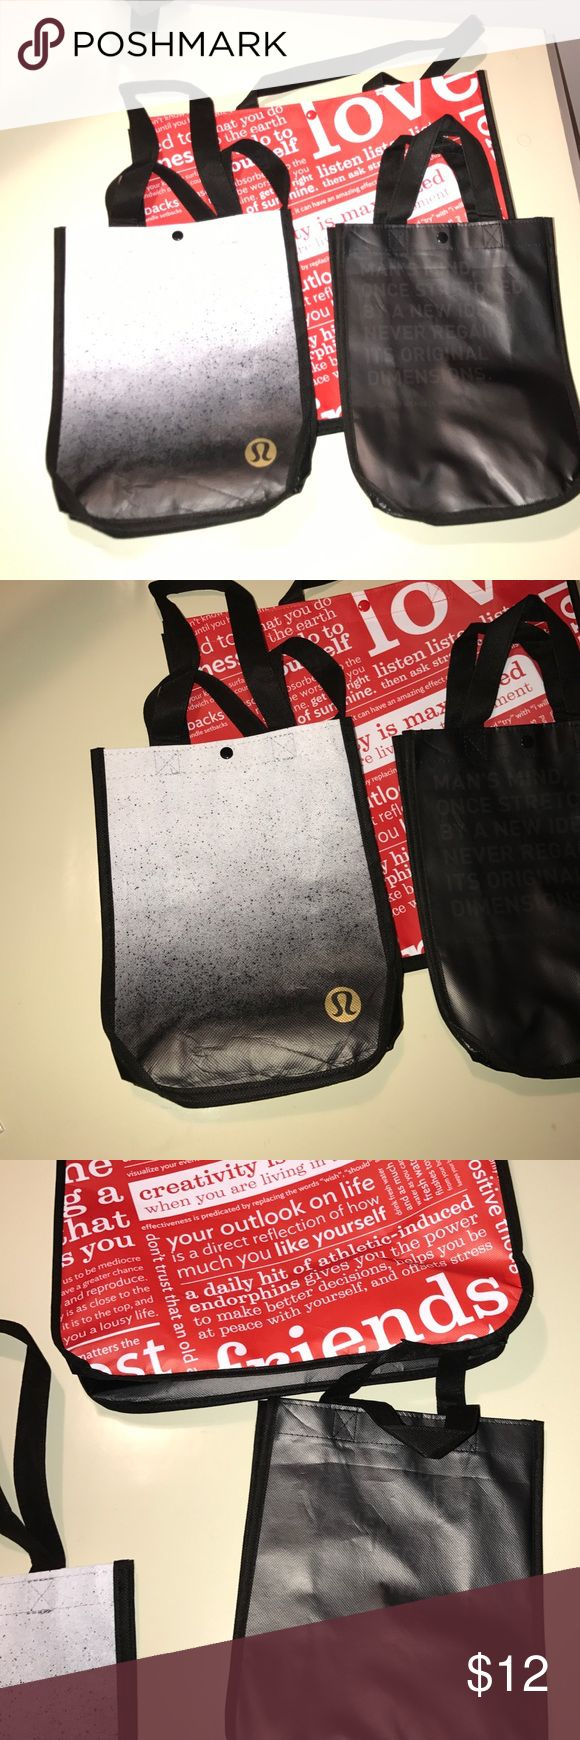 Lot of 3 Lululemon bags 1 large and 2 small. Great for xmas. Ships fast. lululemon athletica Bags